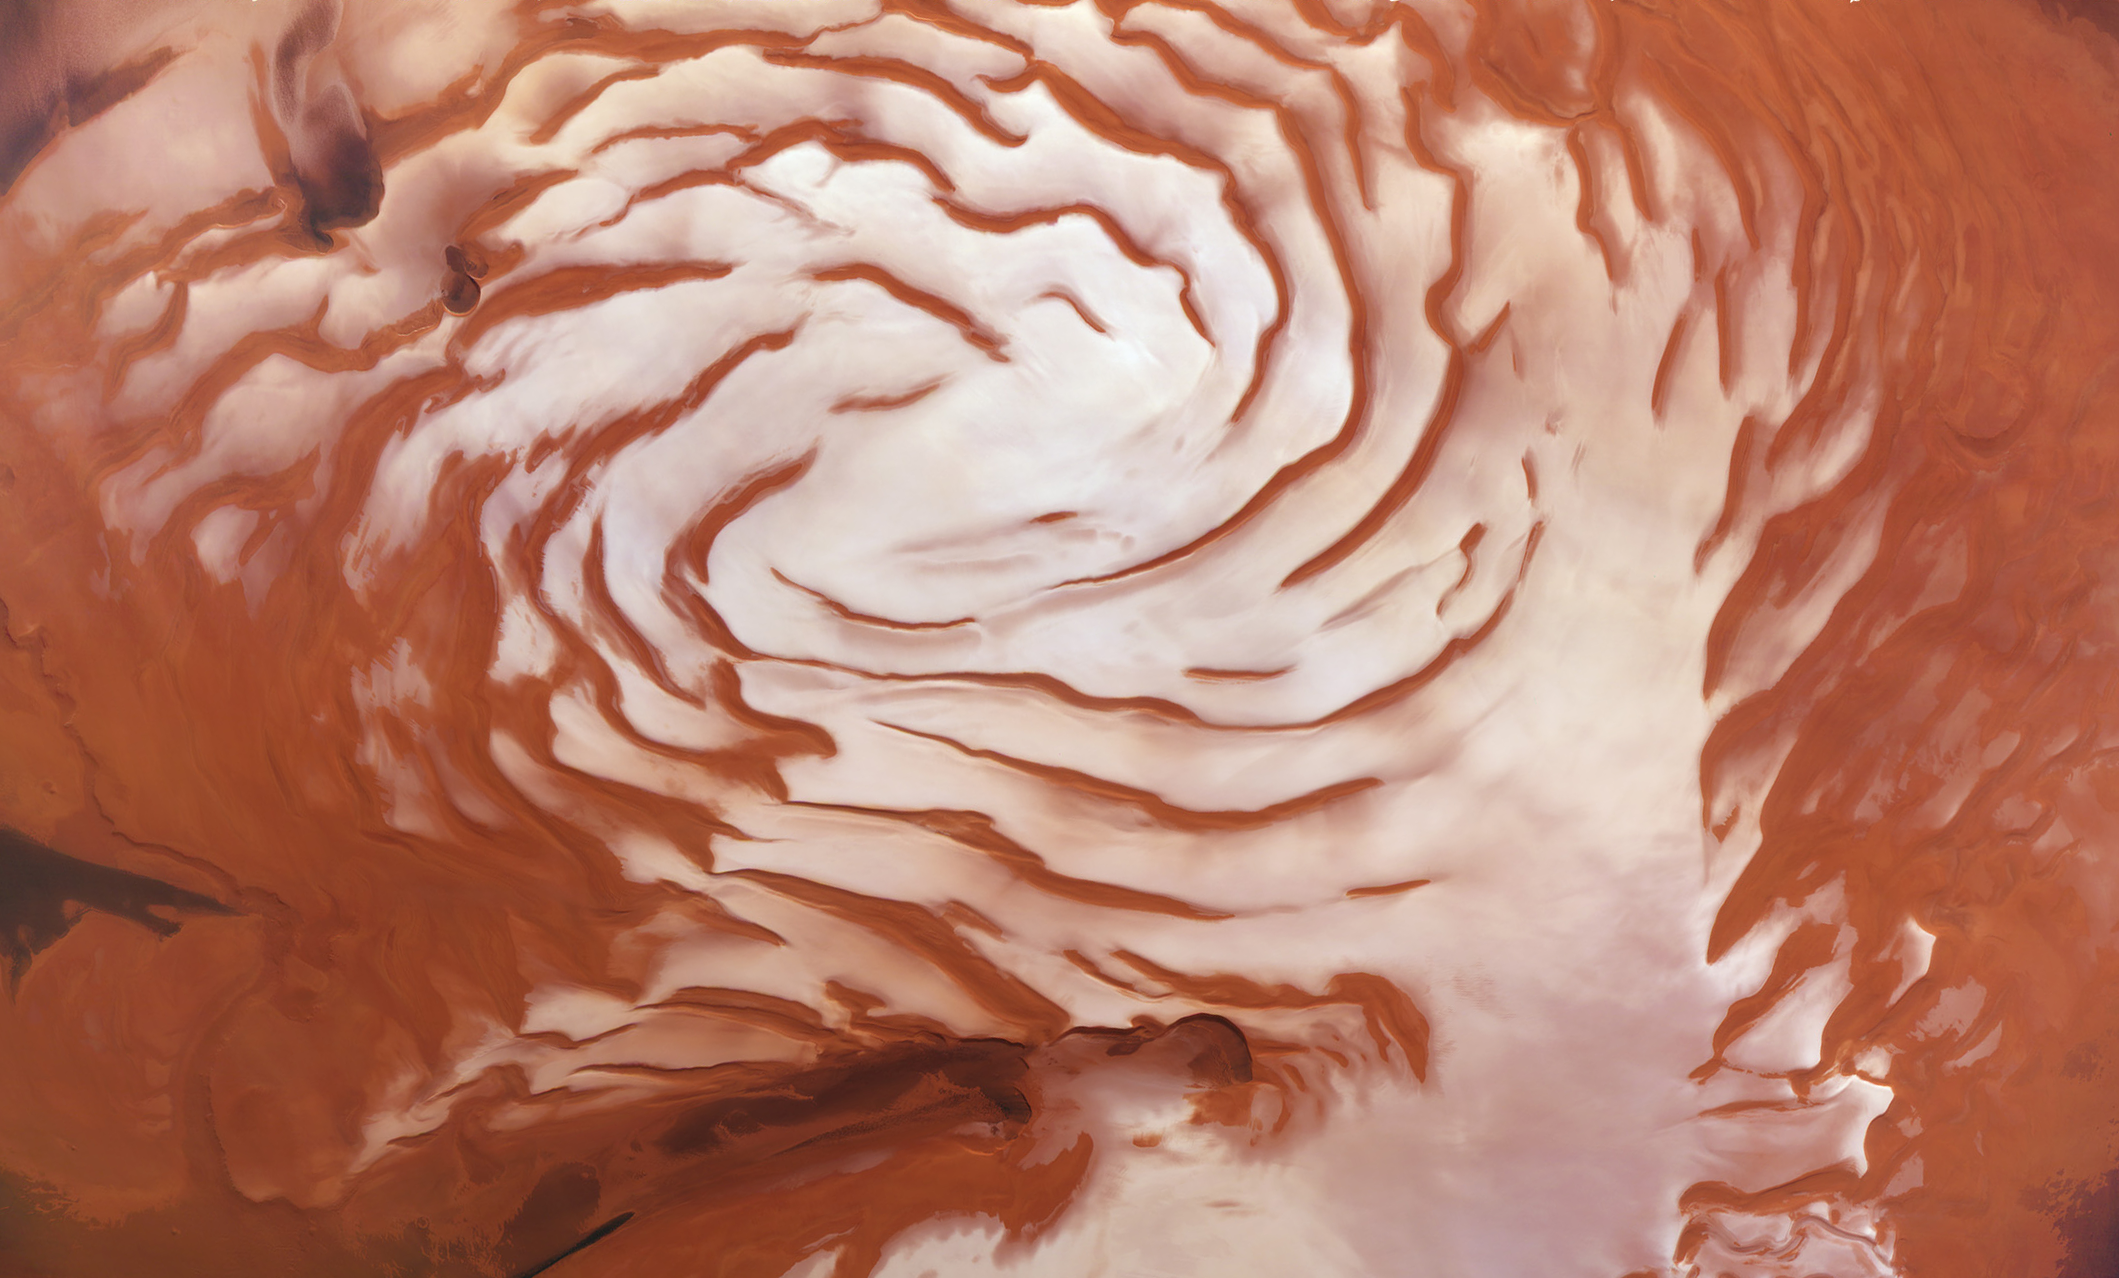 The Time To Nuke Mars Is Now